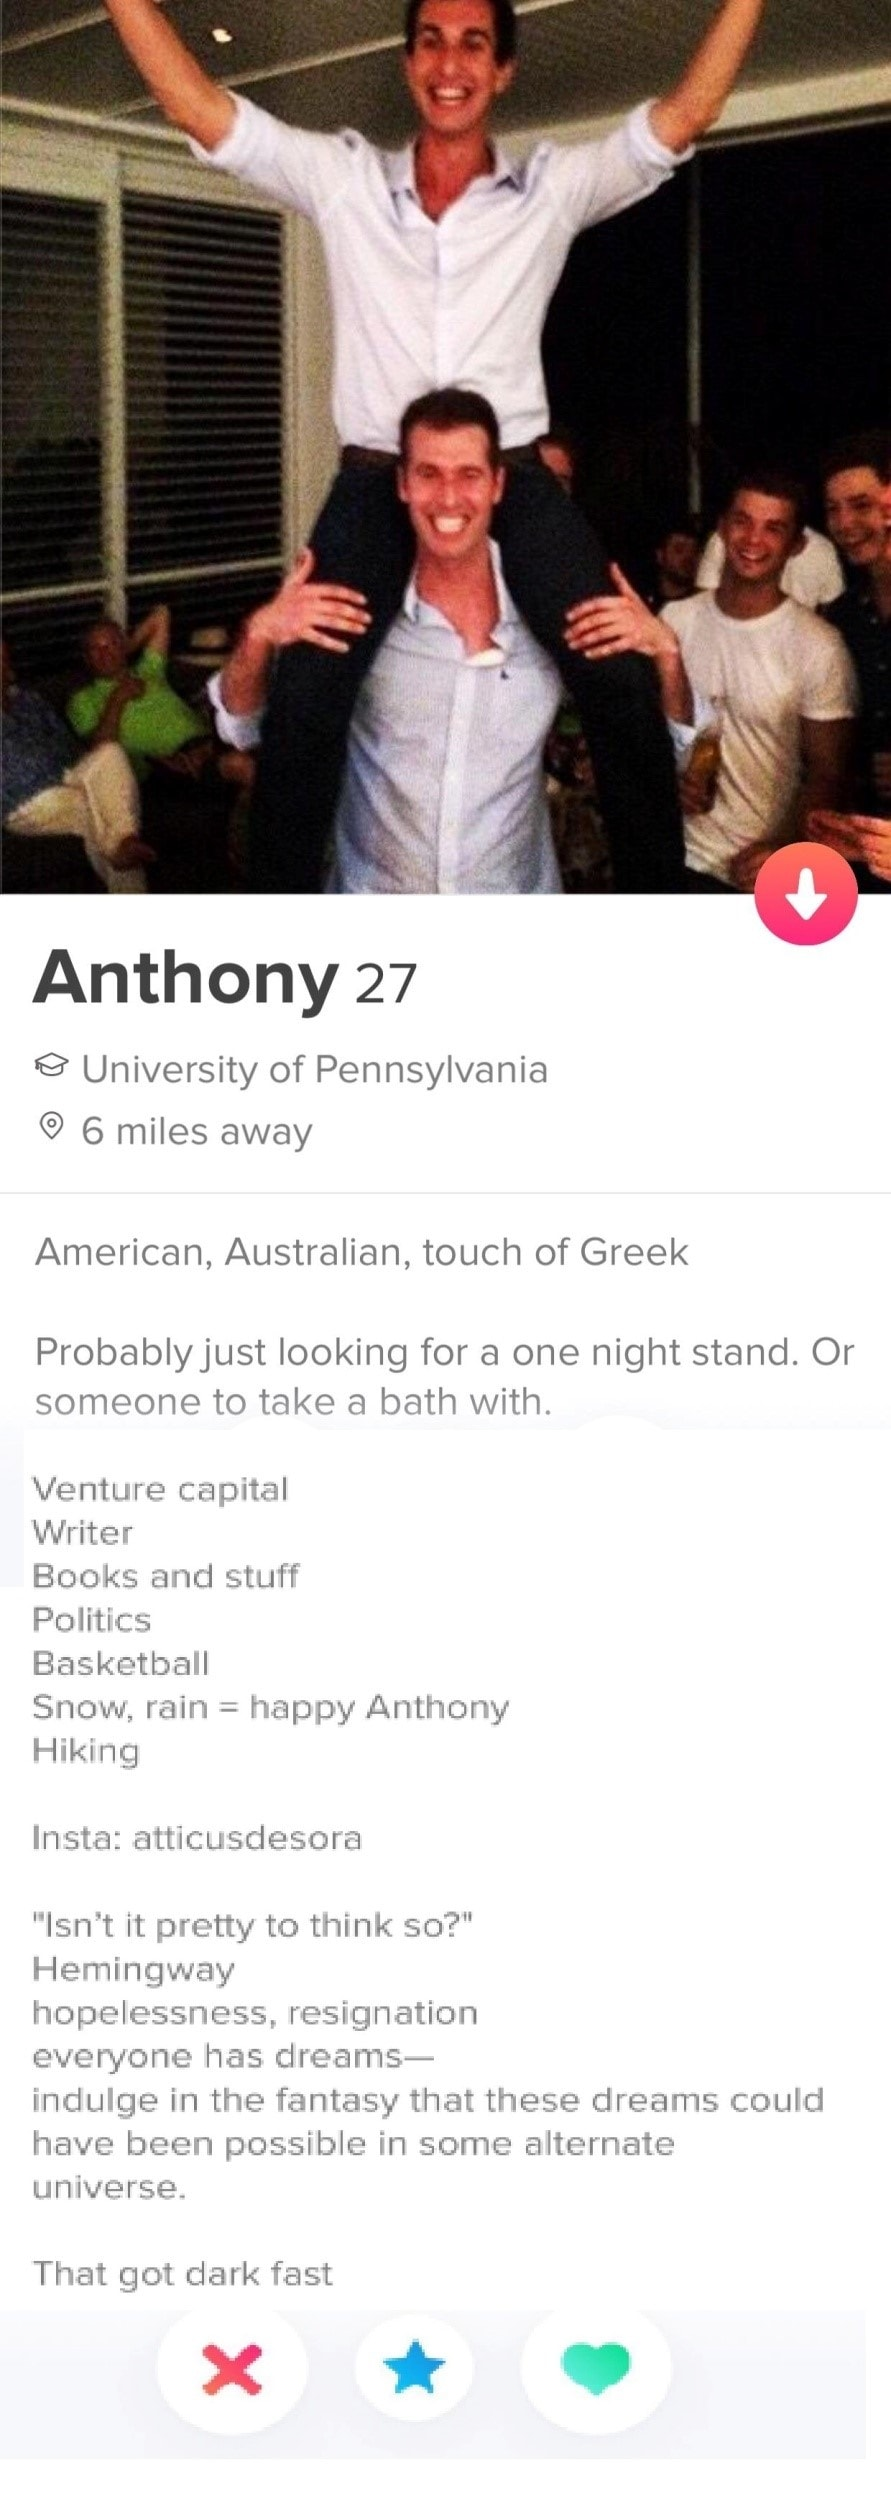 Best tinder bios for guys to get laid